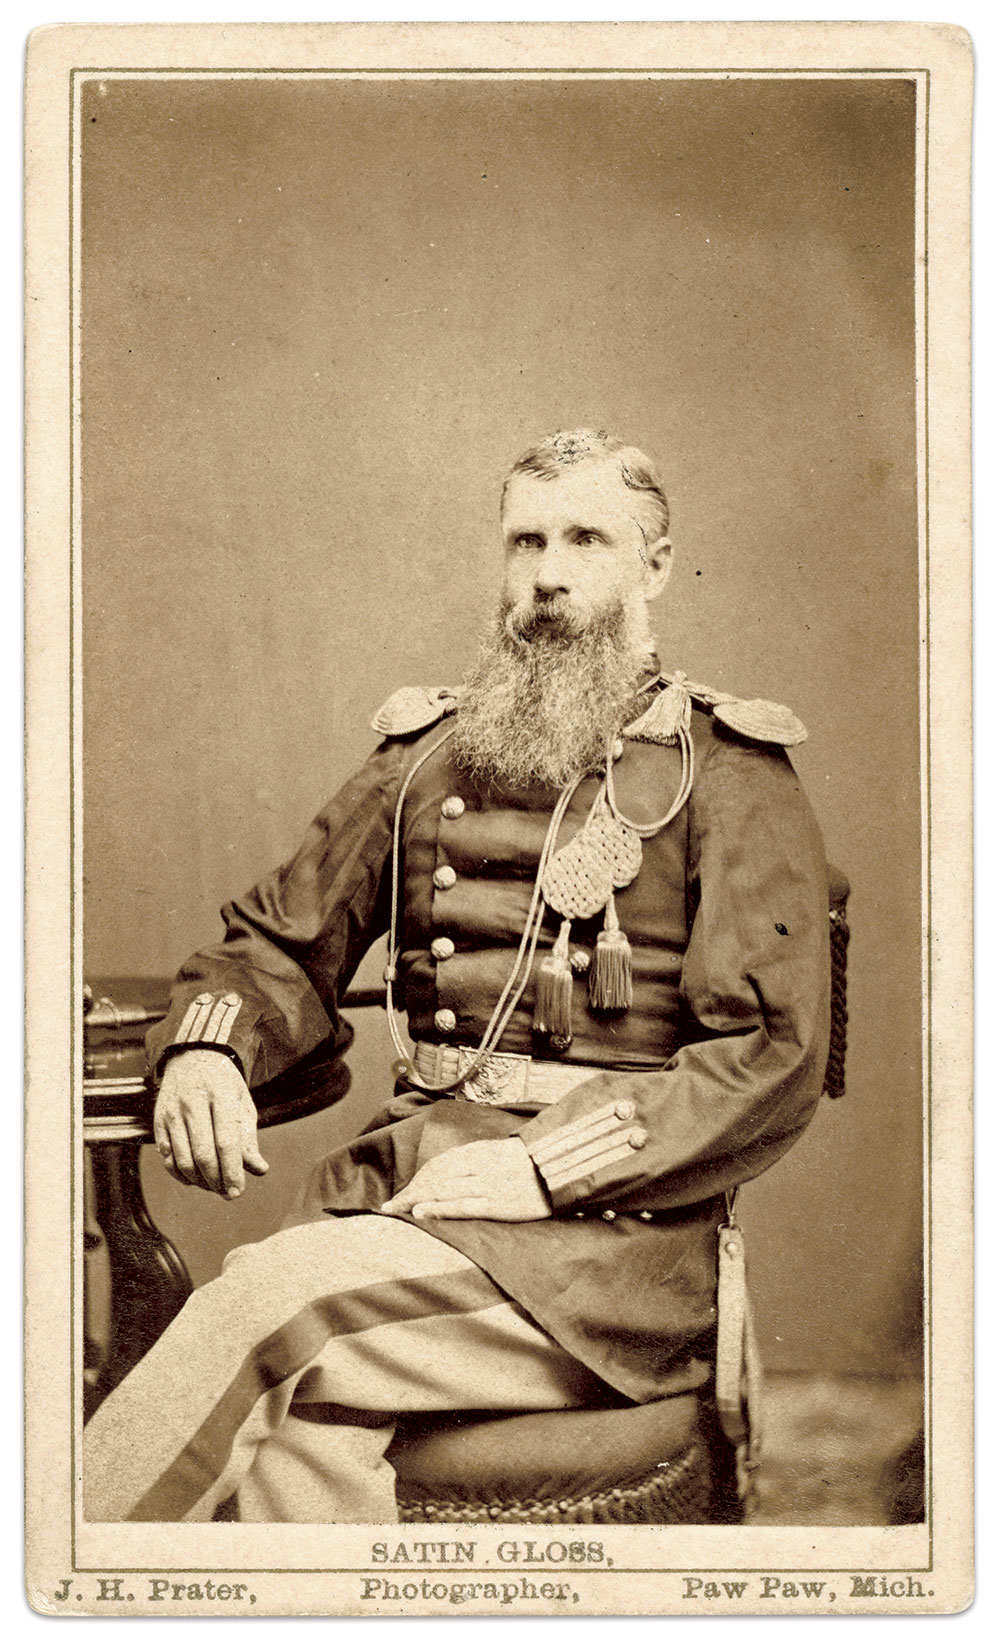 Hugo, pictured as a Regular Army officer after the Civil War. Carte de visite by J.H. Prater of Paw Paw, Mich.